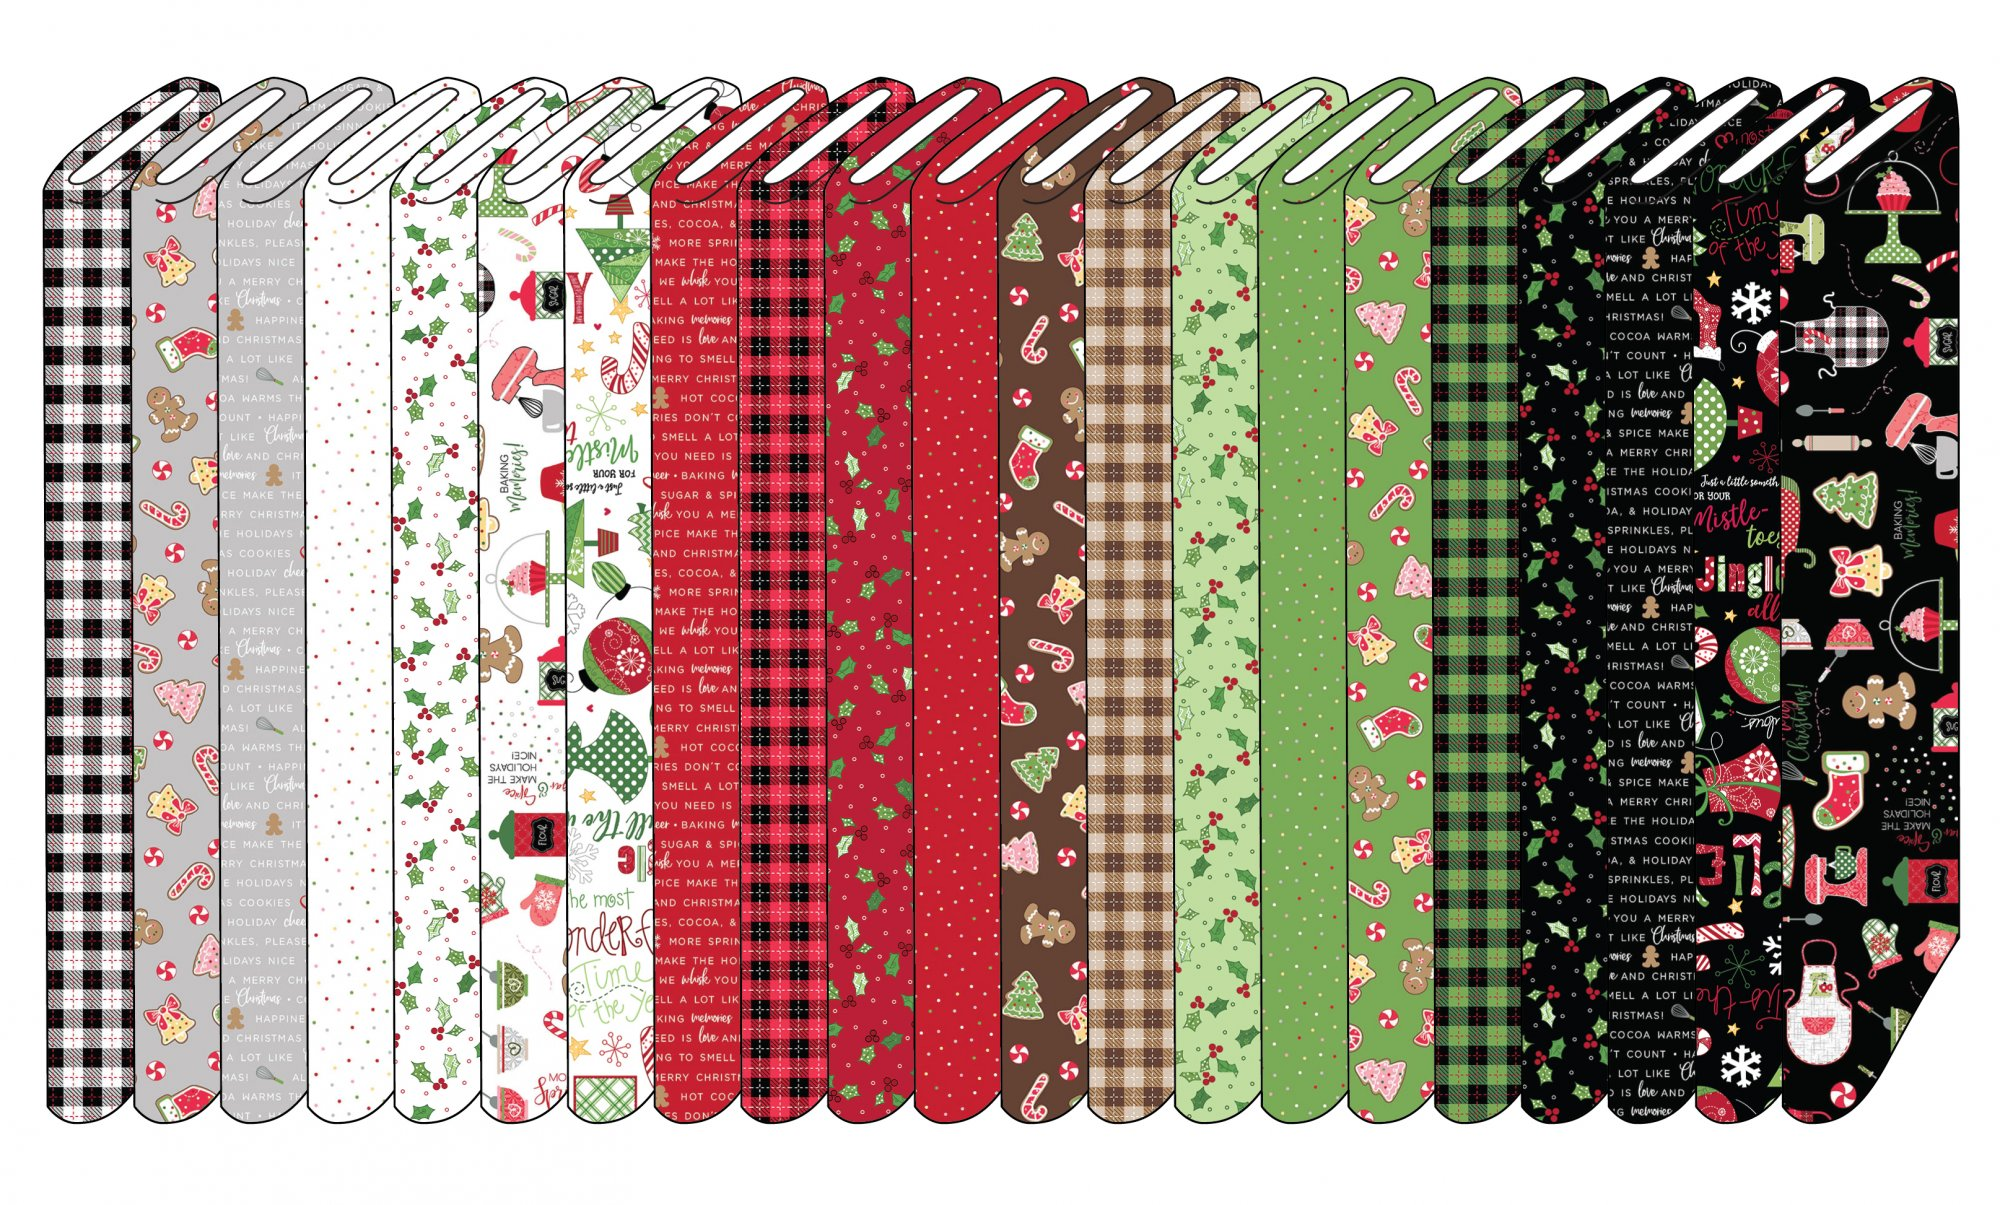 EESC-MASKCJW15CA - KIMBERBELL CHRISTMAS JINGLE & WHISK CASE ASST. (21PC @ 15Y) - ARRIVING IN OCTOBER 2021